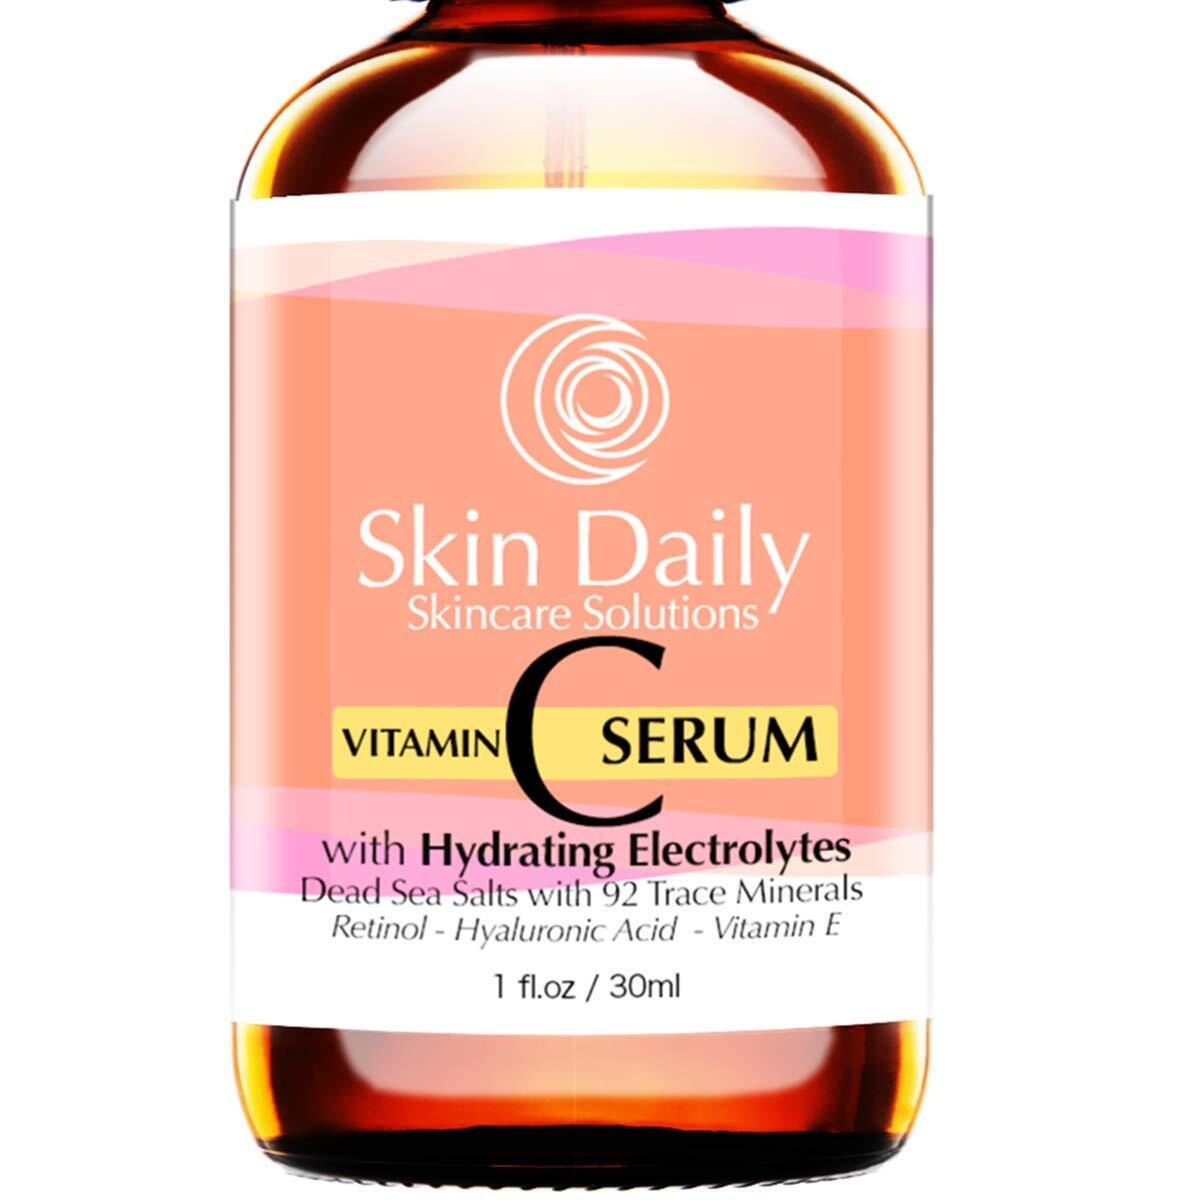 Premier Vitamin C Serum Infused with Hydrating Electrolytes